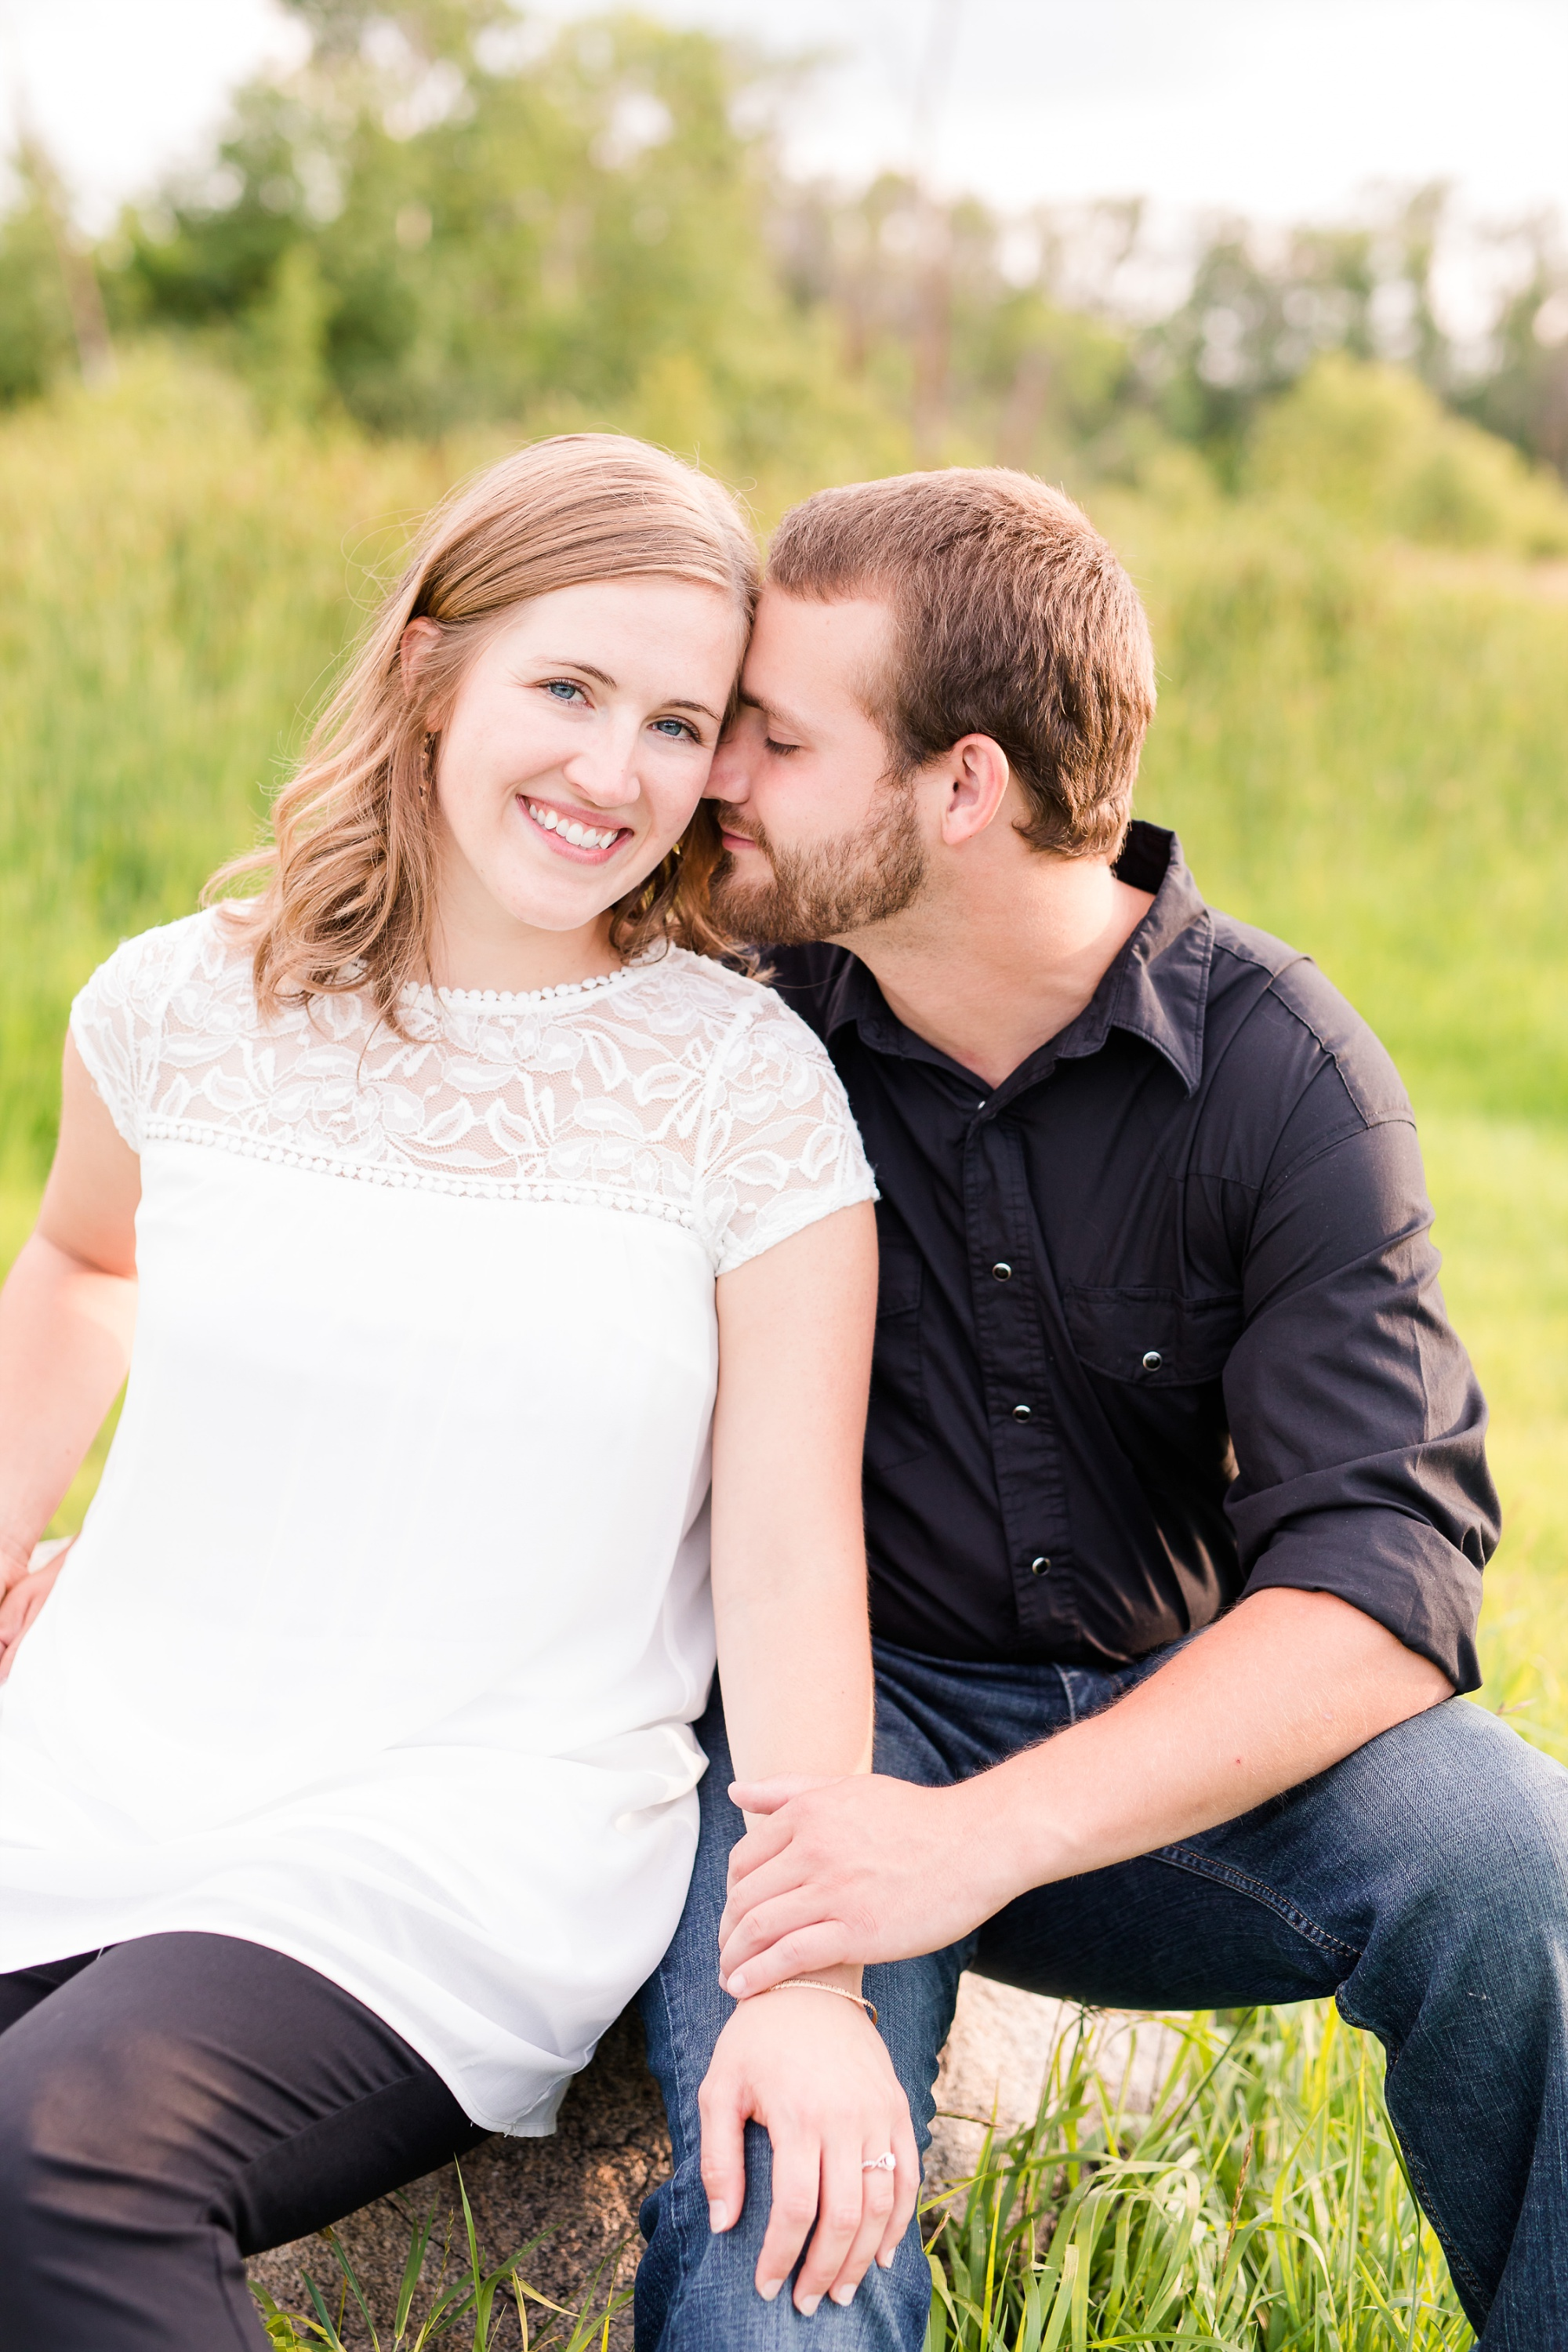 AmberLangerudPhotography_Countryside Engagement Session in Minnesota_3109.jpg